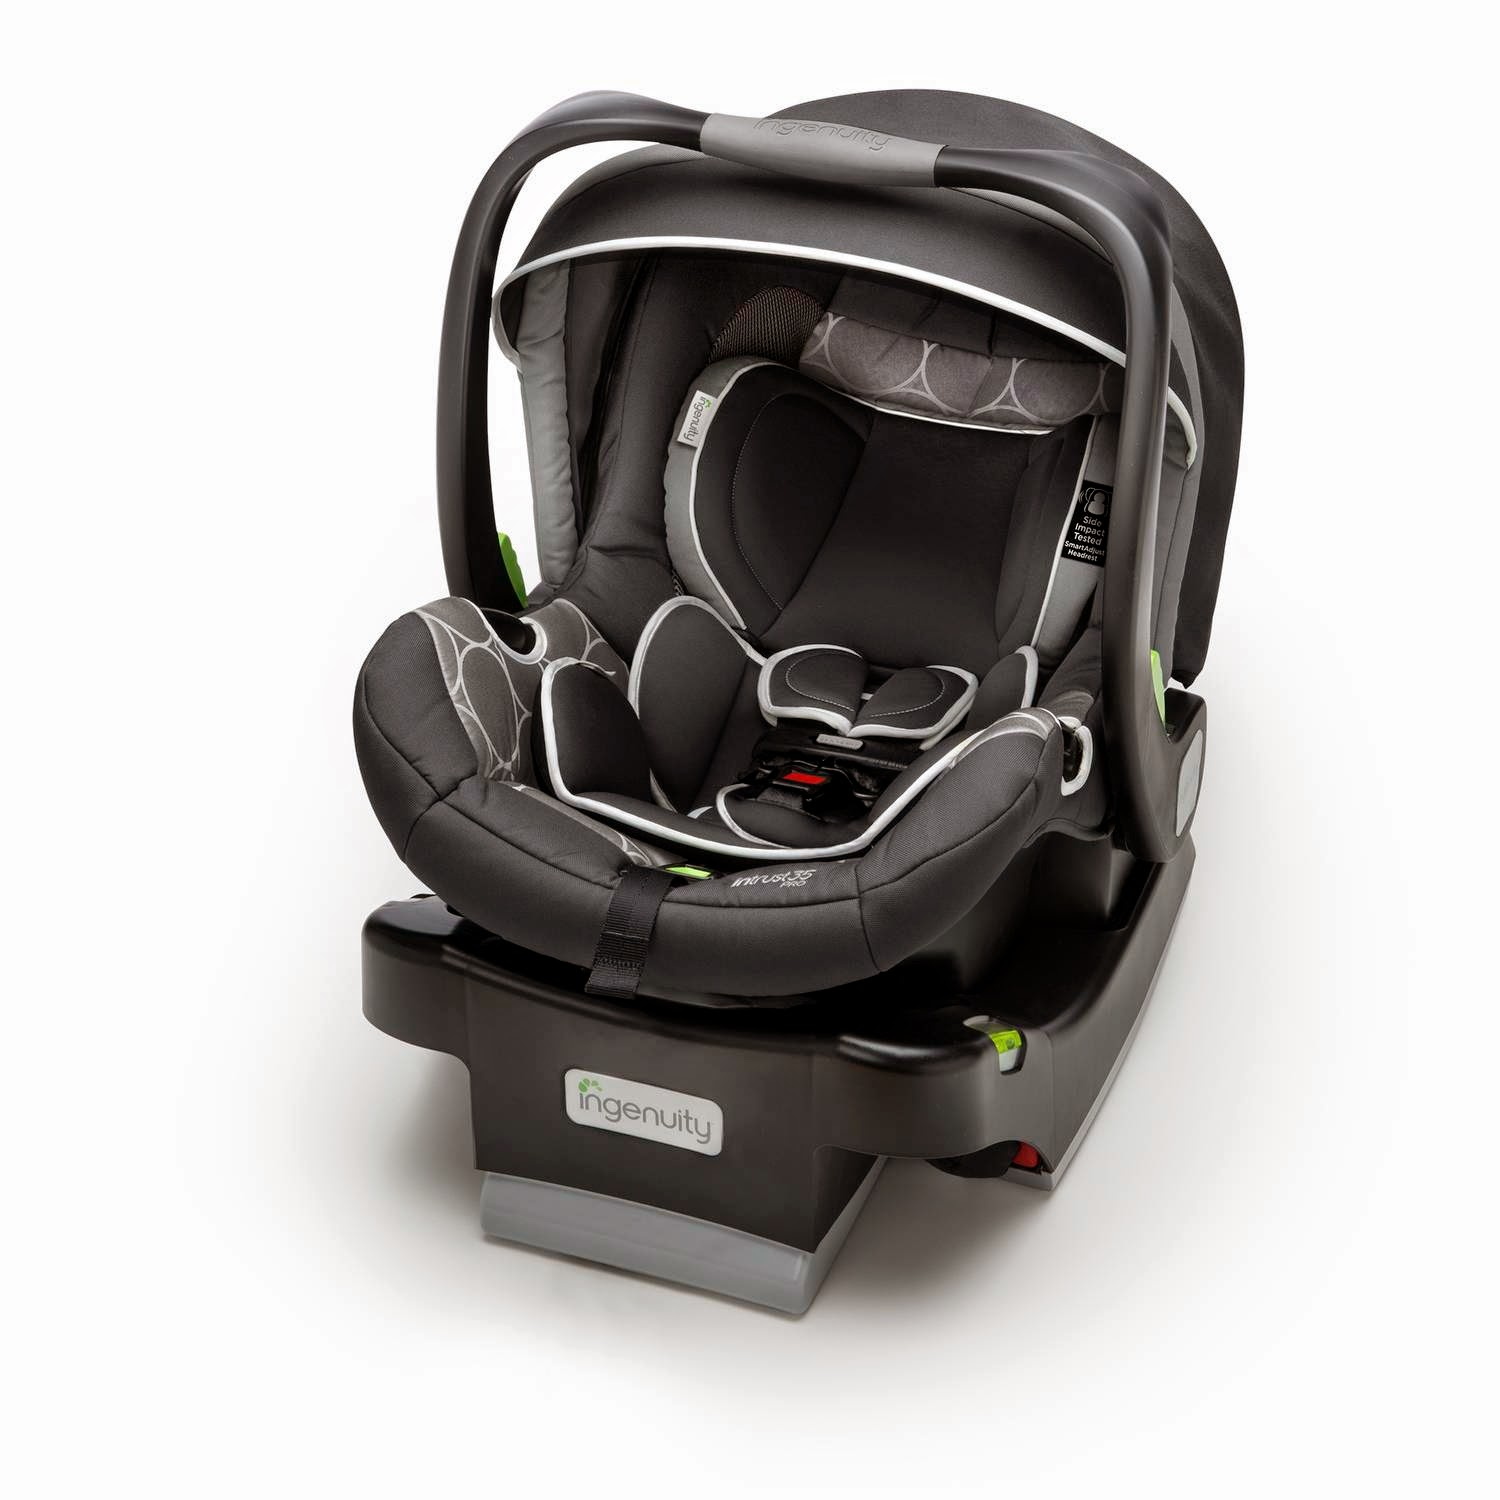 Ingenuity Car Seat Amp Stroller Travel System Mommy Katie